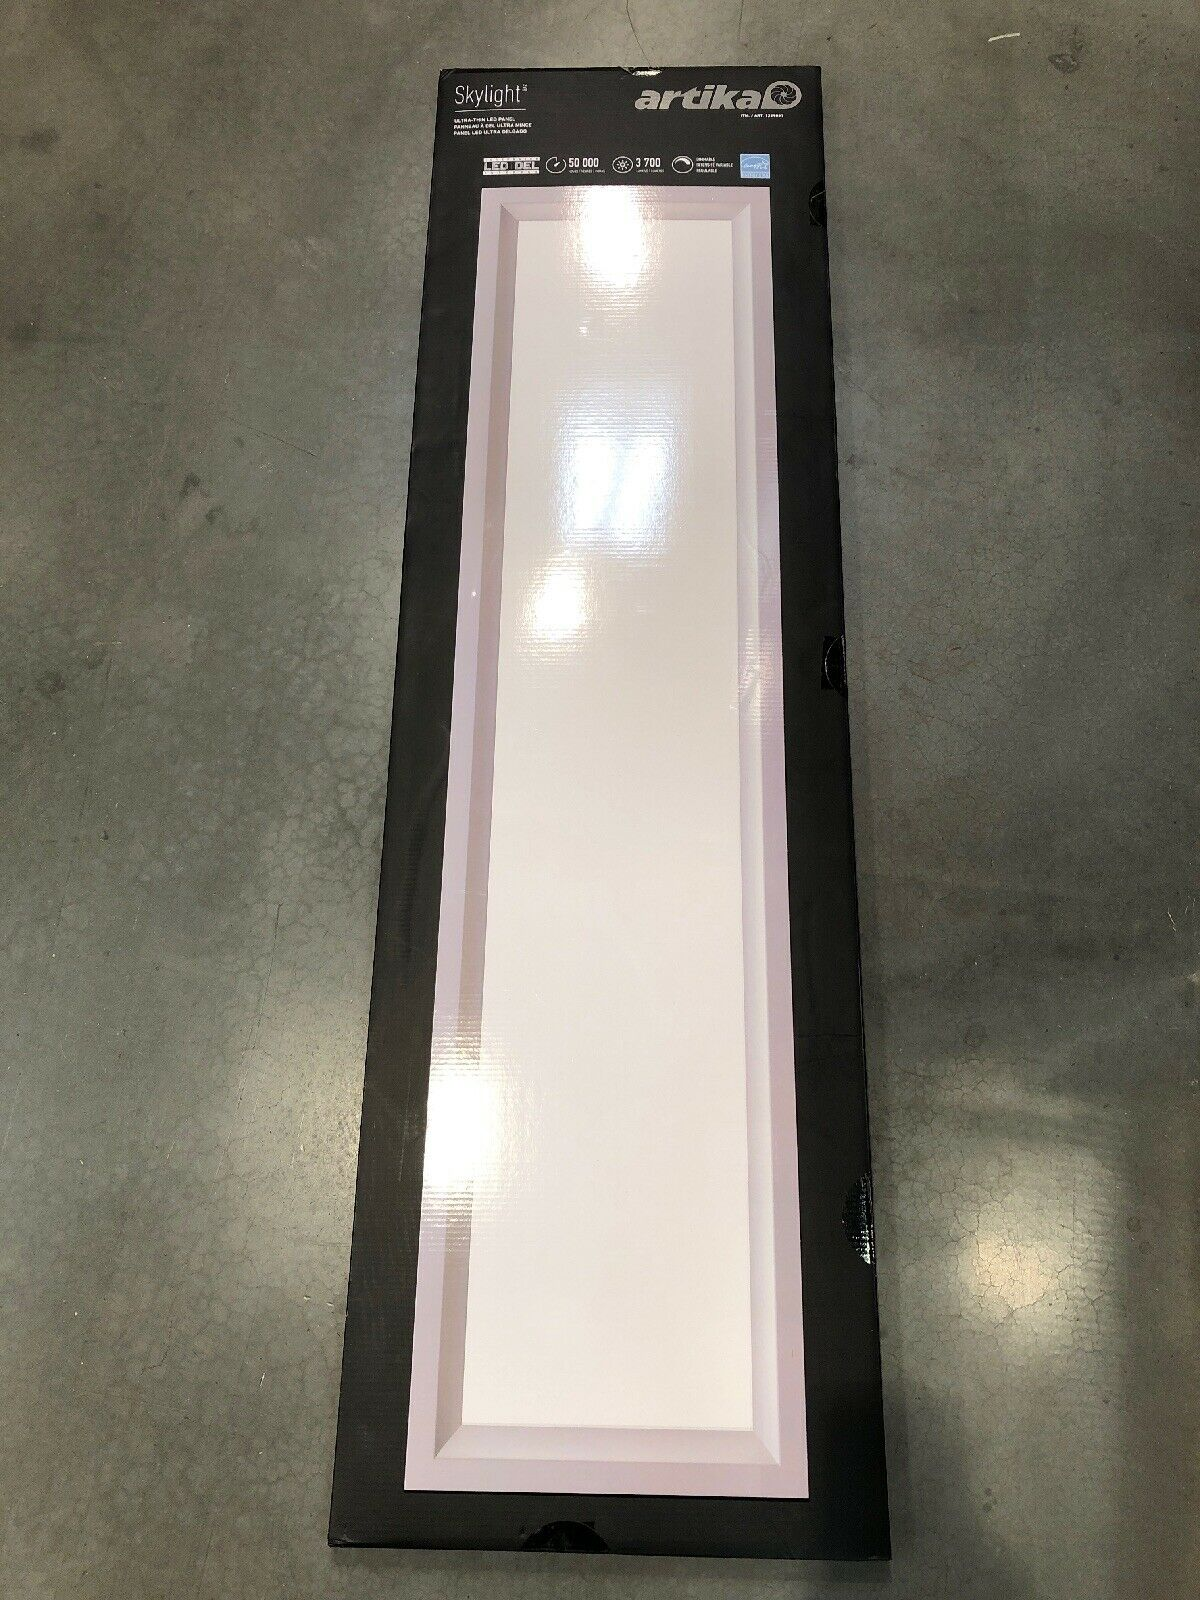 2X NEW Artika Ultra-Thin Dimmable LED Skylight Flat Panel Ceiling Light Fixture